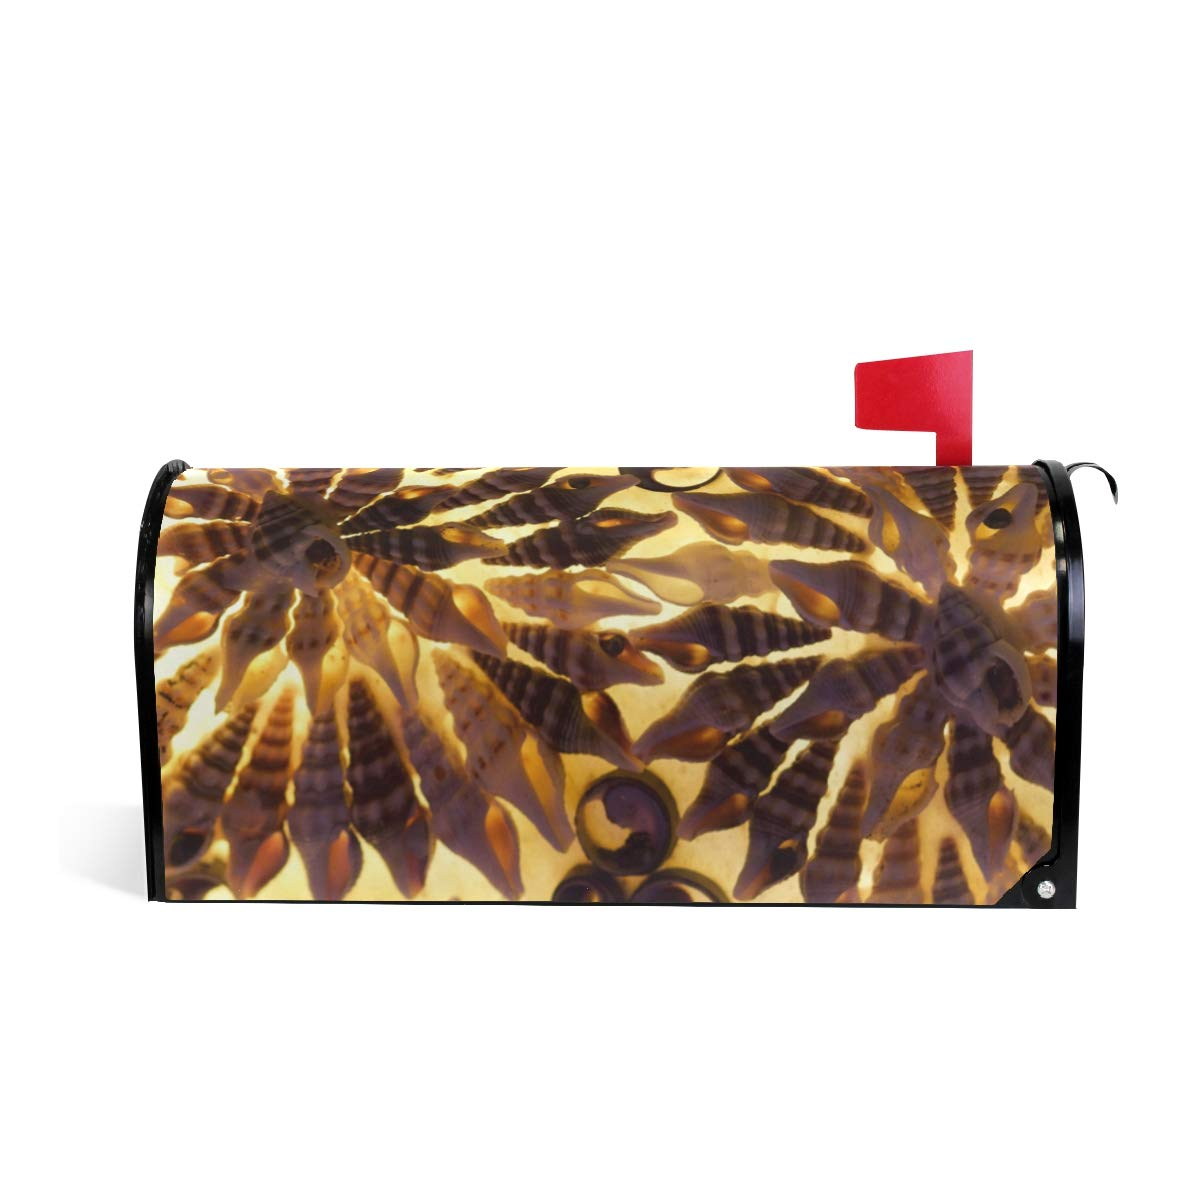 HEOEH Mussels Gold Light Flora Pattern Magnetic Mailbox Cover Home Garden Decorations Oversized 25.5 x 20.8 inches